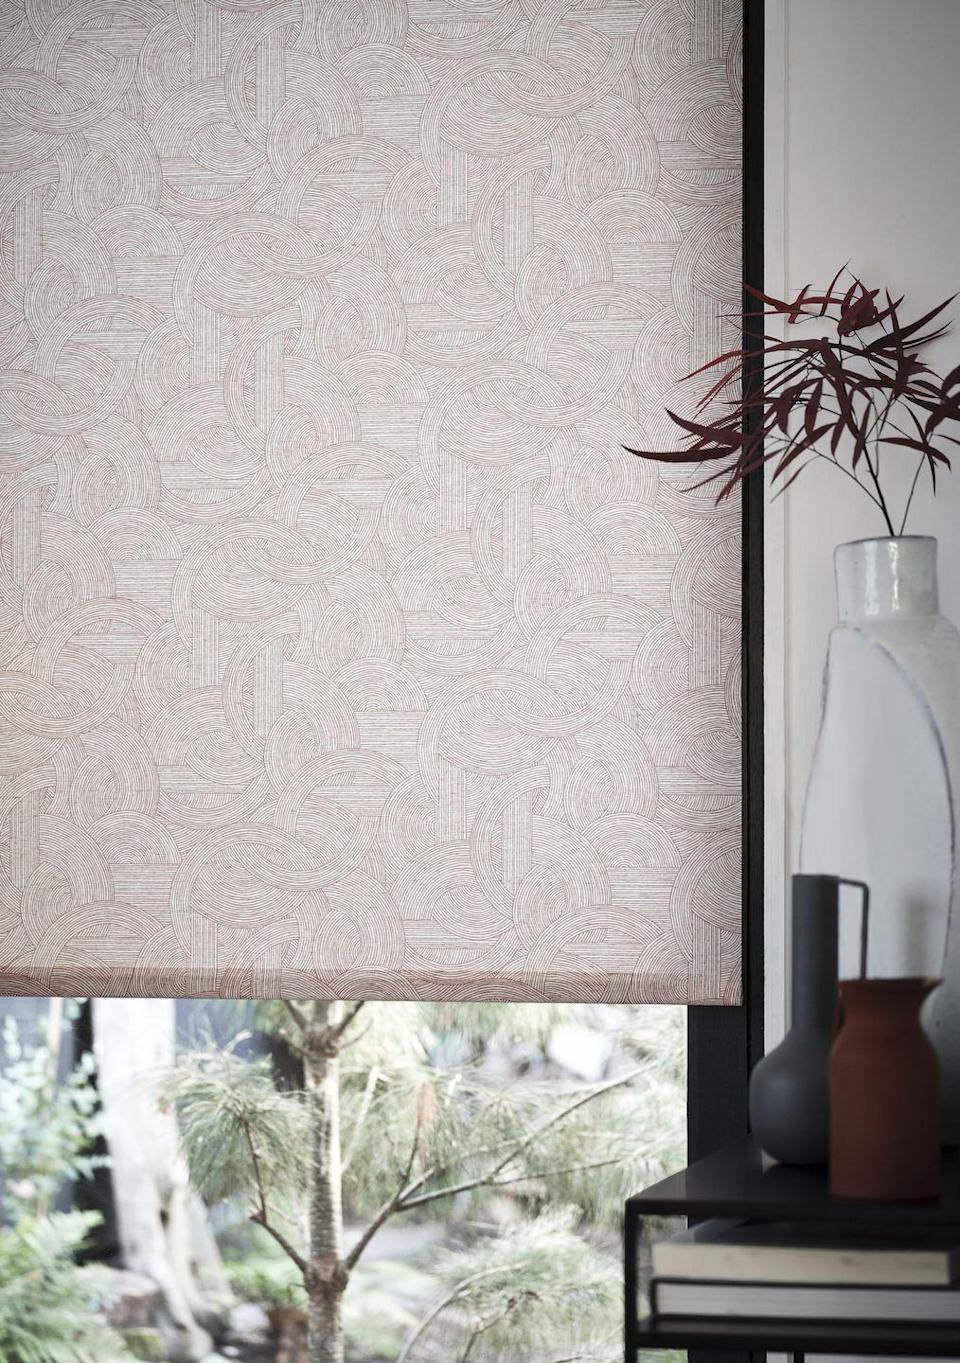 "<p>Crafted on a semi-linen base cloth, Breeze Russet features an abstract pattern of interlinking straight and curved lines. Adding a beautiful serene feel to your room, this deep, earthy tone can warm up even the coldest of interiors.</p><p><a class=""link rapid-noclick-resp"" href=""https://www.hillarys.co.uk/products/breeze-russet-roller-blind/"" rel=""nofollow noopener"" target=""_blank"" data-ylk=""slk:Order a sample and request an appointment"">Order a sample and request an appointment</a></p>"